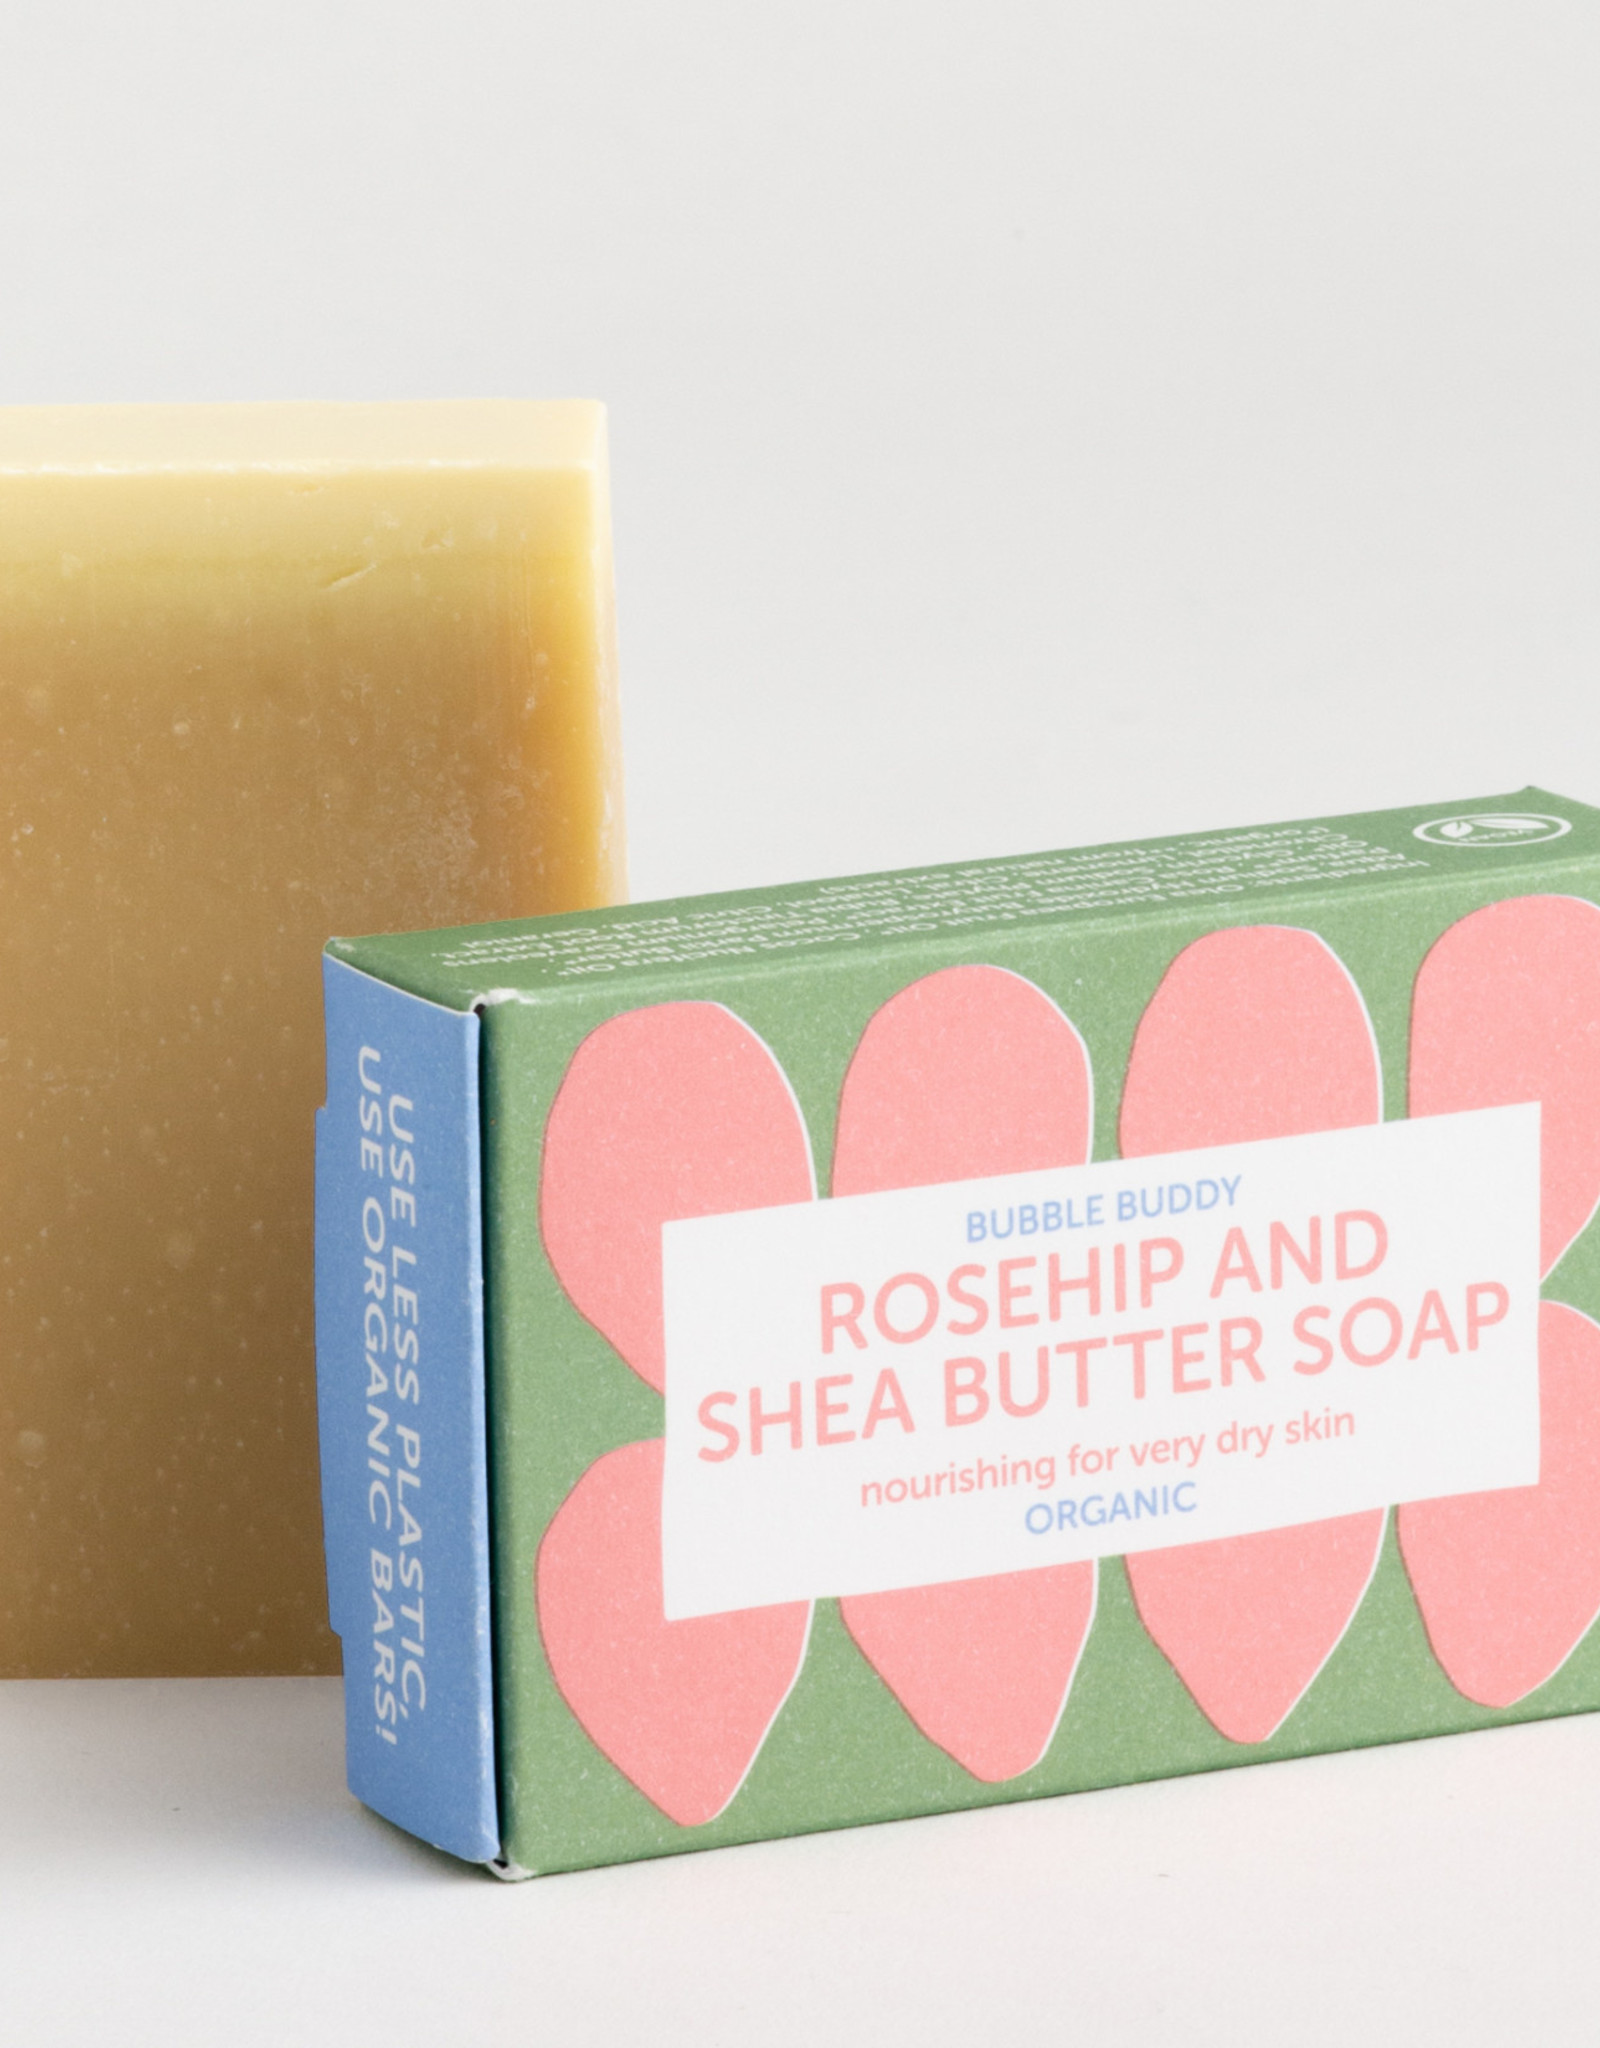 Foekje Fleur Organic rosehip with sheabutter bar